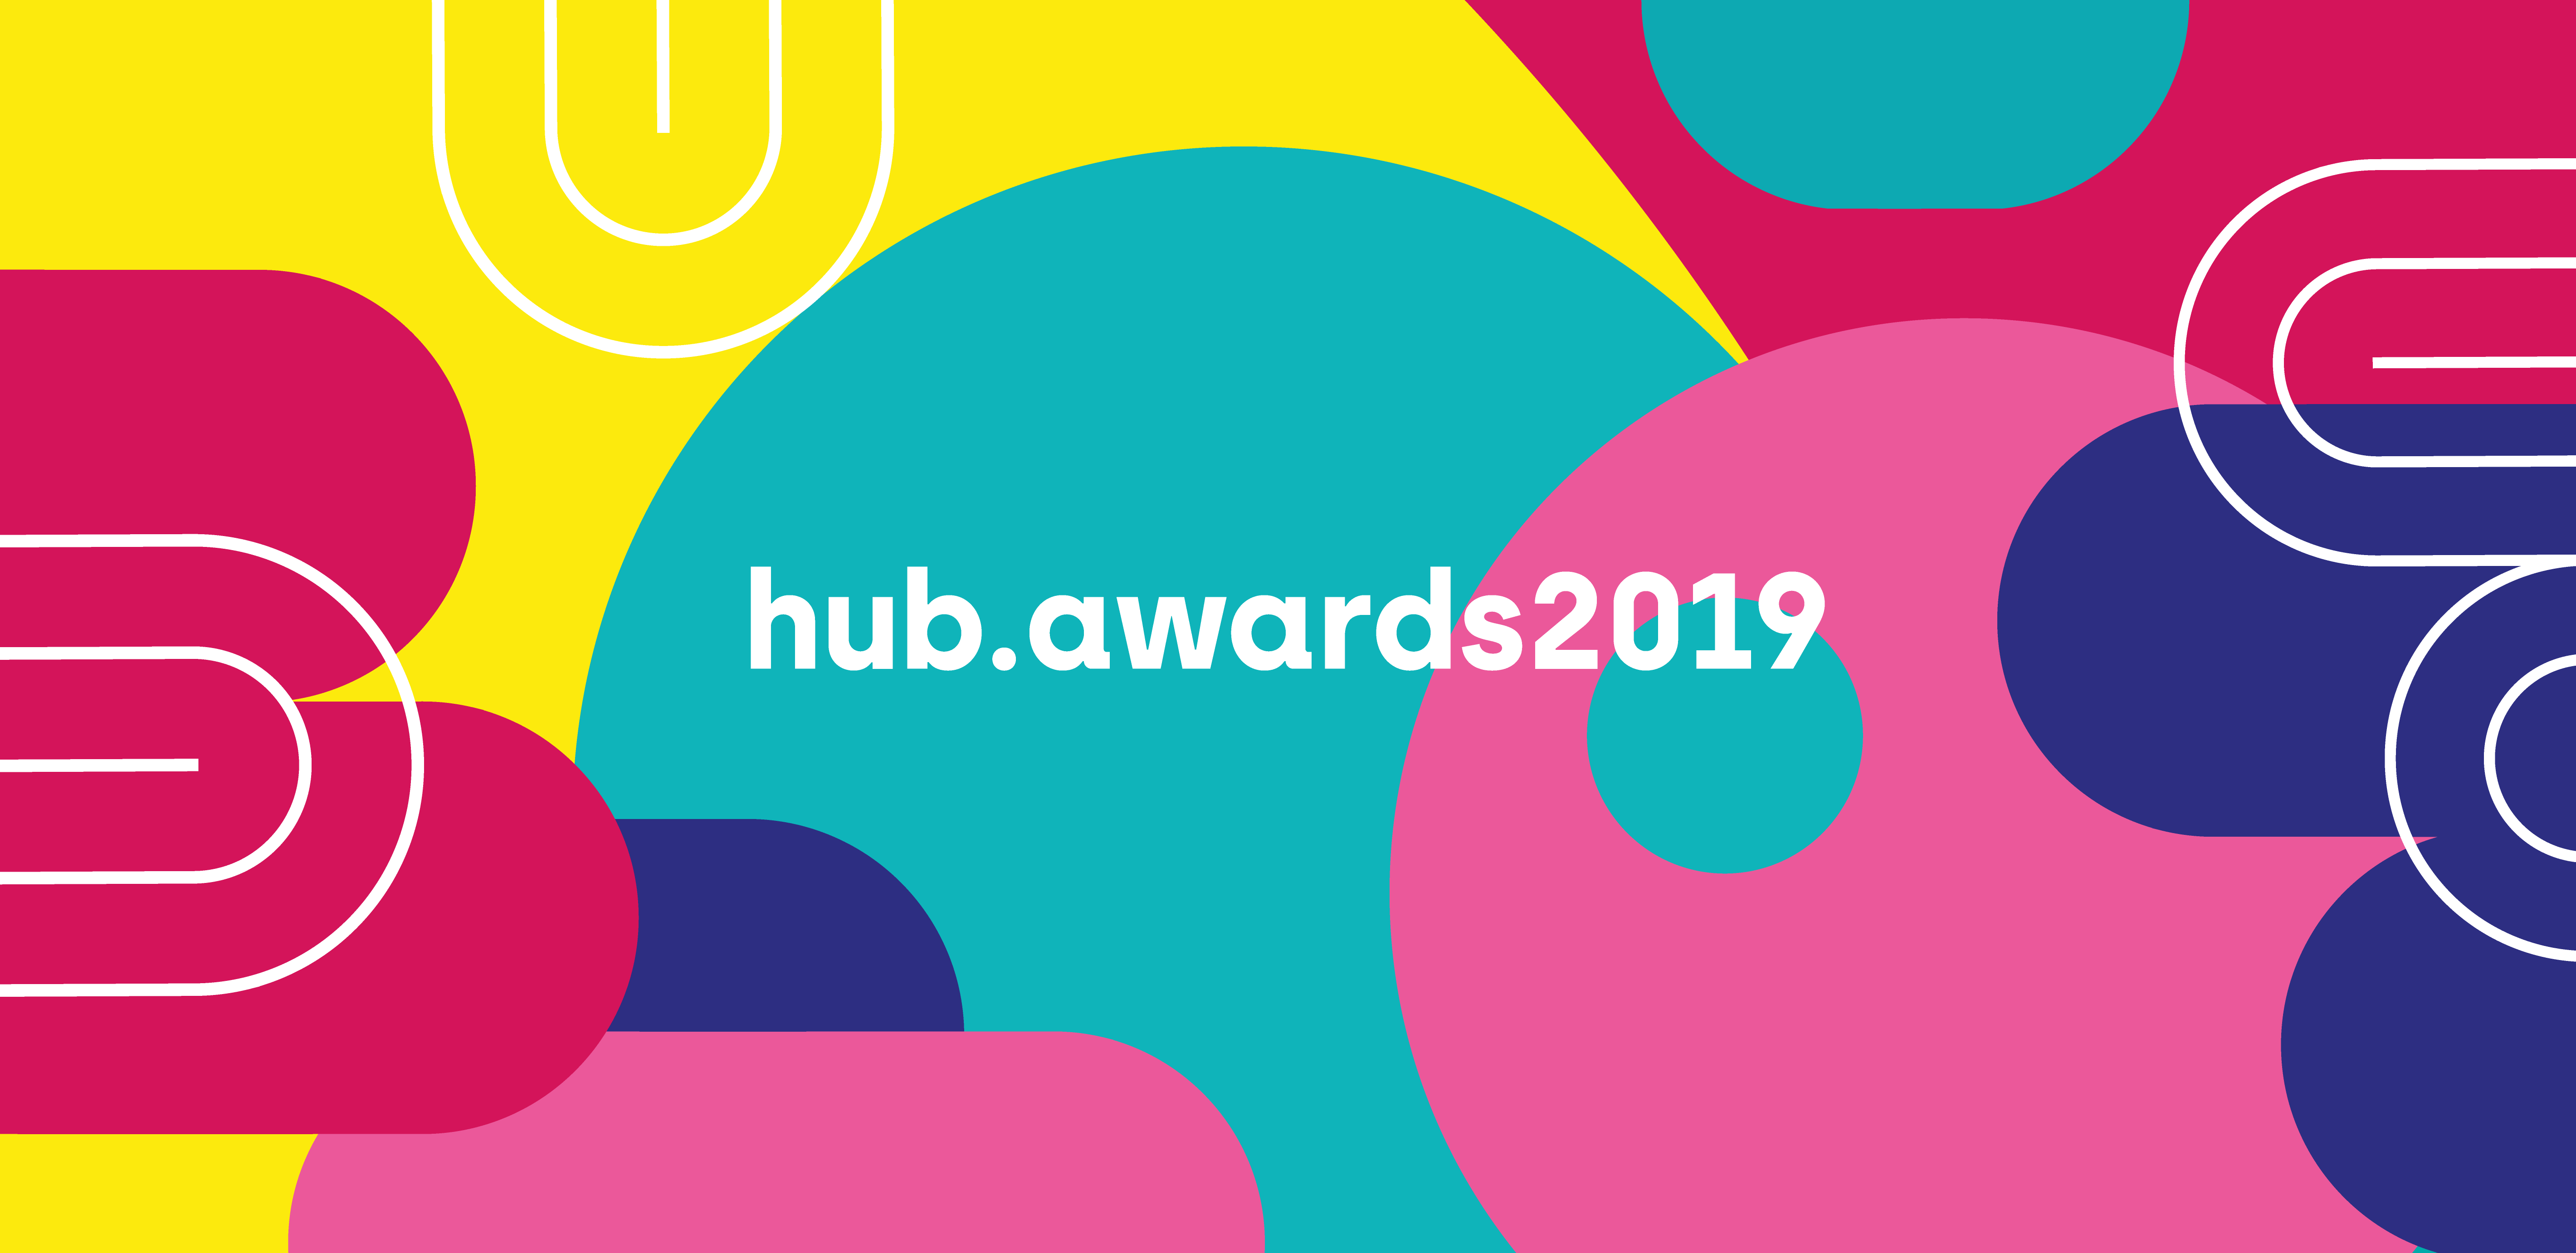 hub.awards: discover the 15 nominees!